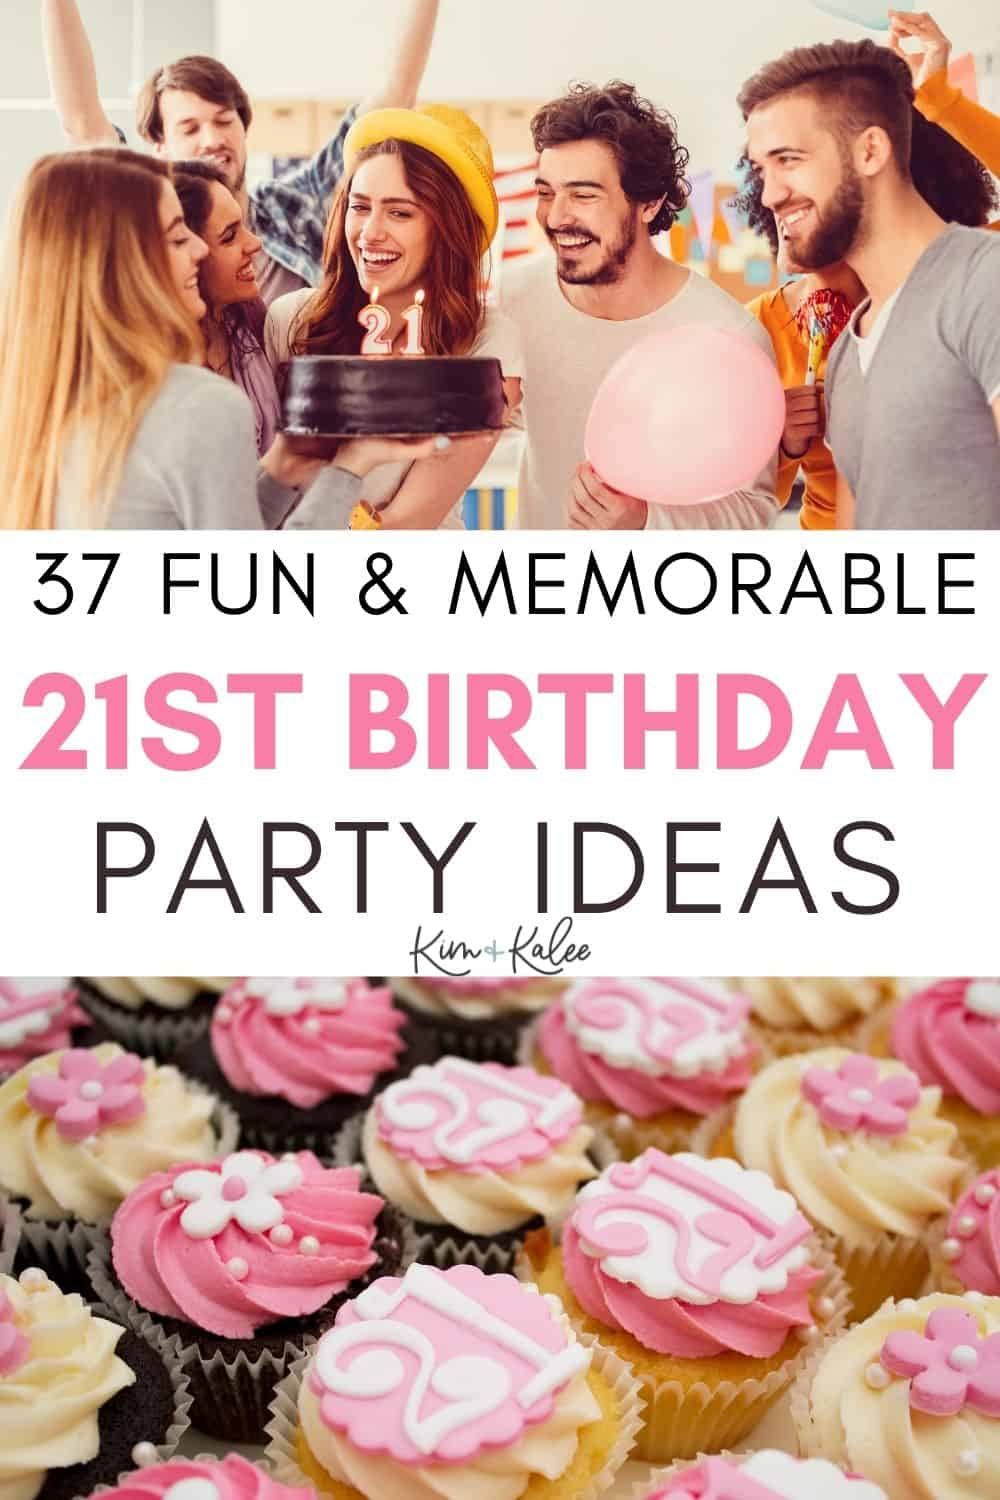 21st birthday ideas collage of a party with pink cupcakes